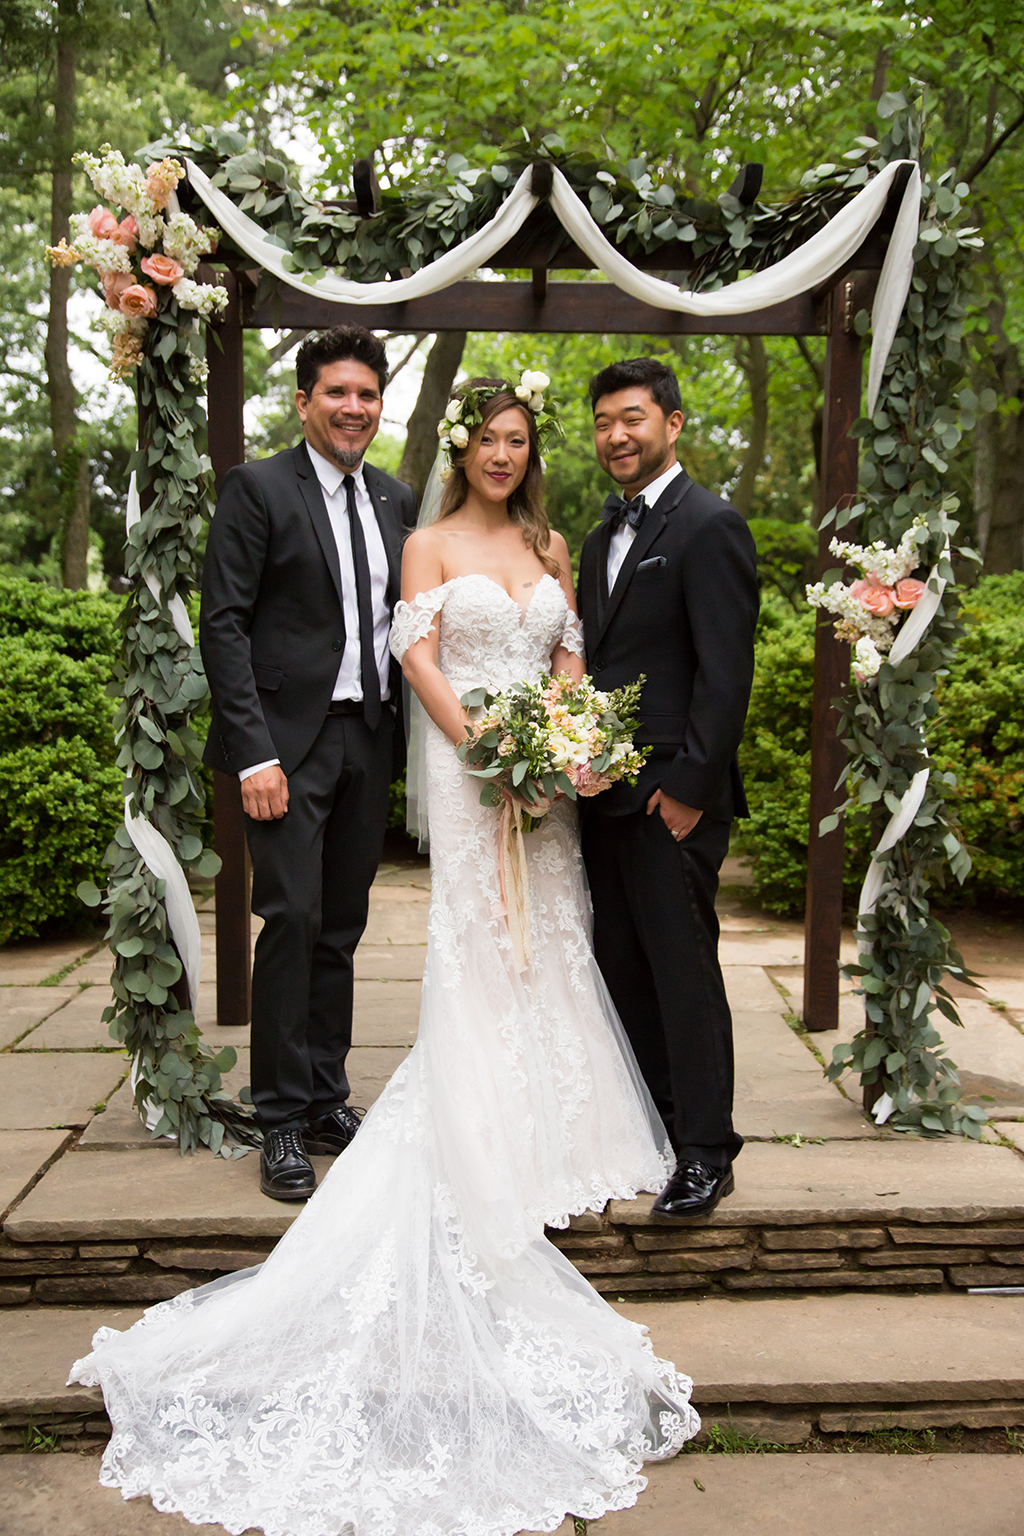 Rob Garza Thievery Corporation wedding Woodend Sanctuary Chevy Chase Maryland Jesse Meyer-Appel Virginia Nguyen Virginia Meyer-Appel